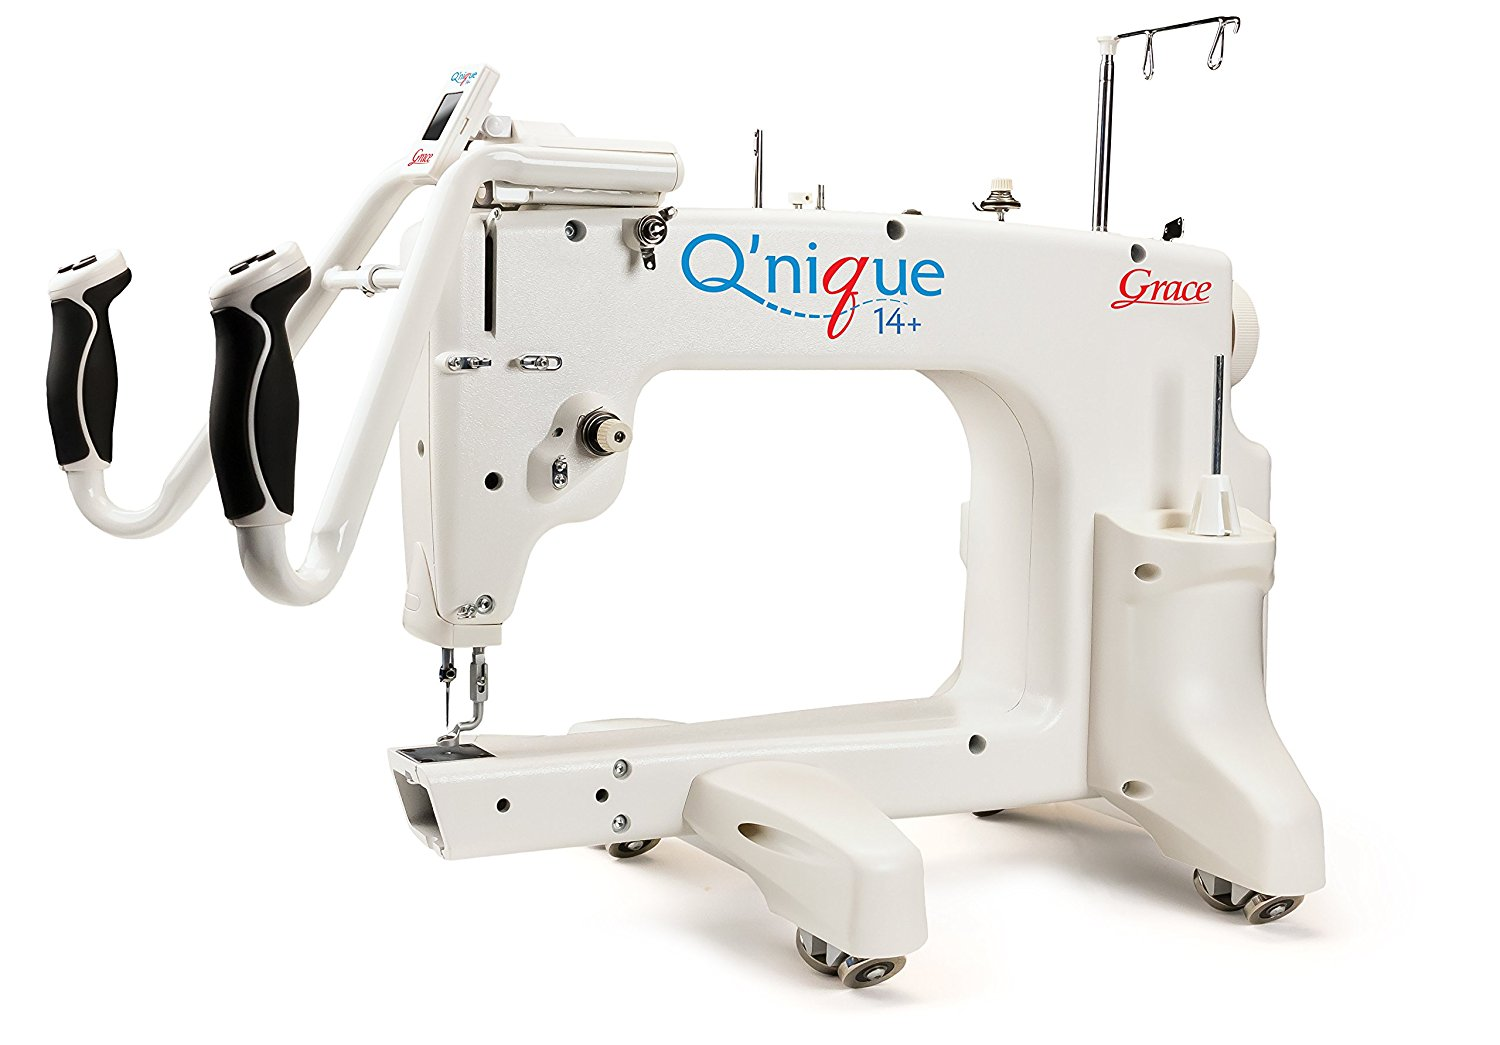 baby quilting arm quilt machines com lock icanhelpsew tiara long machine